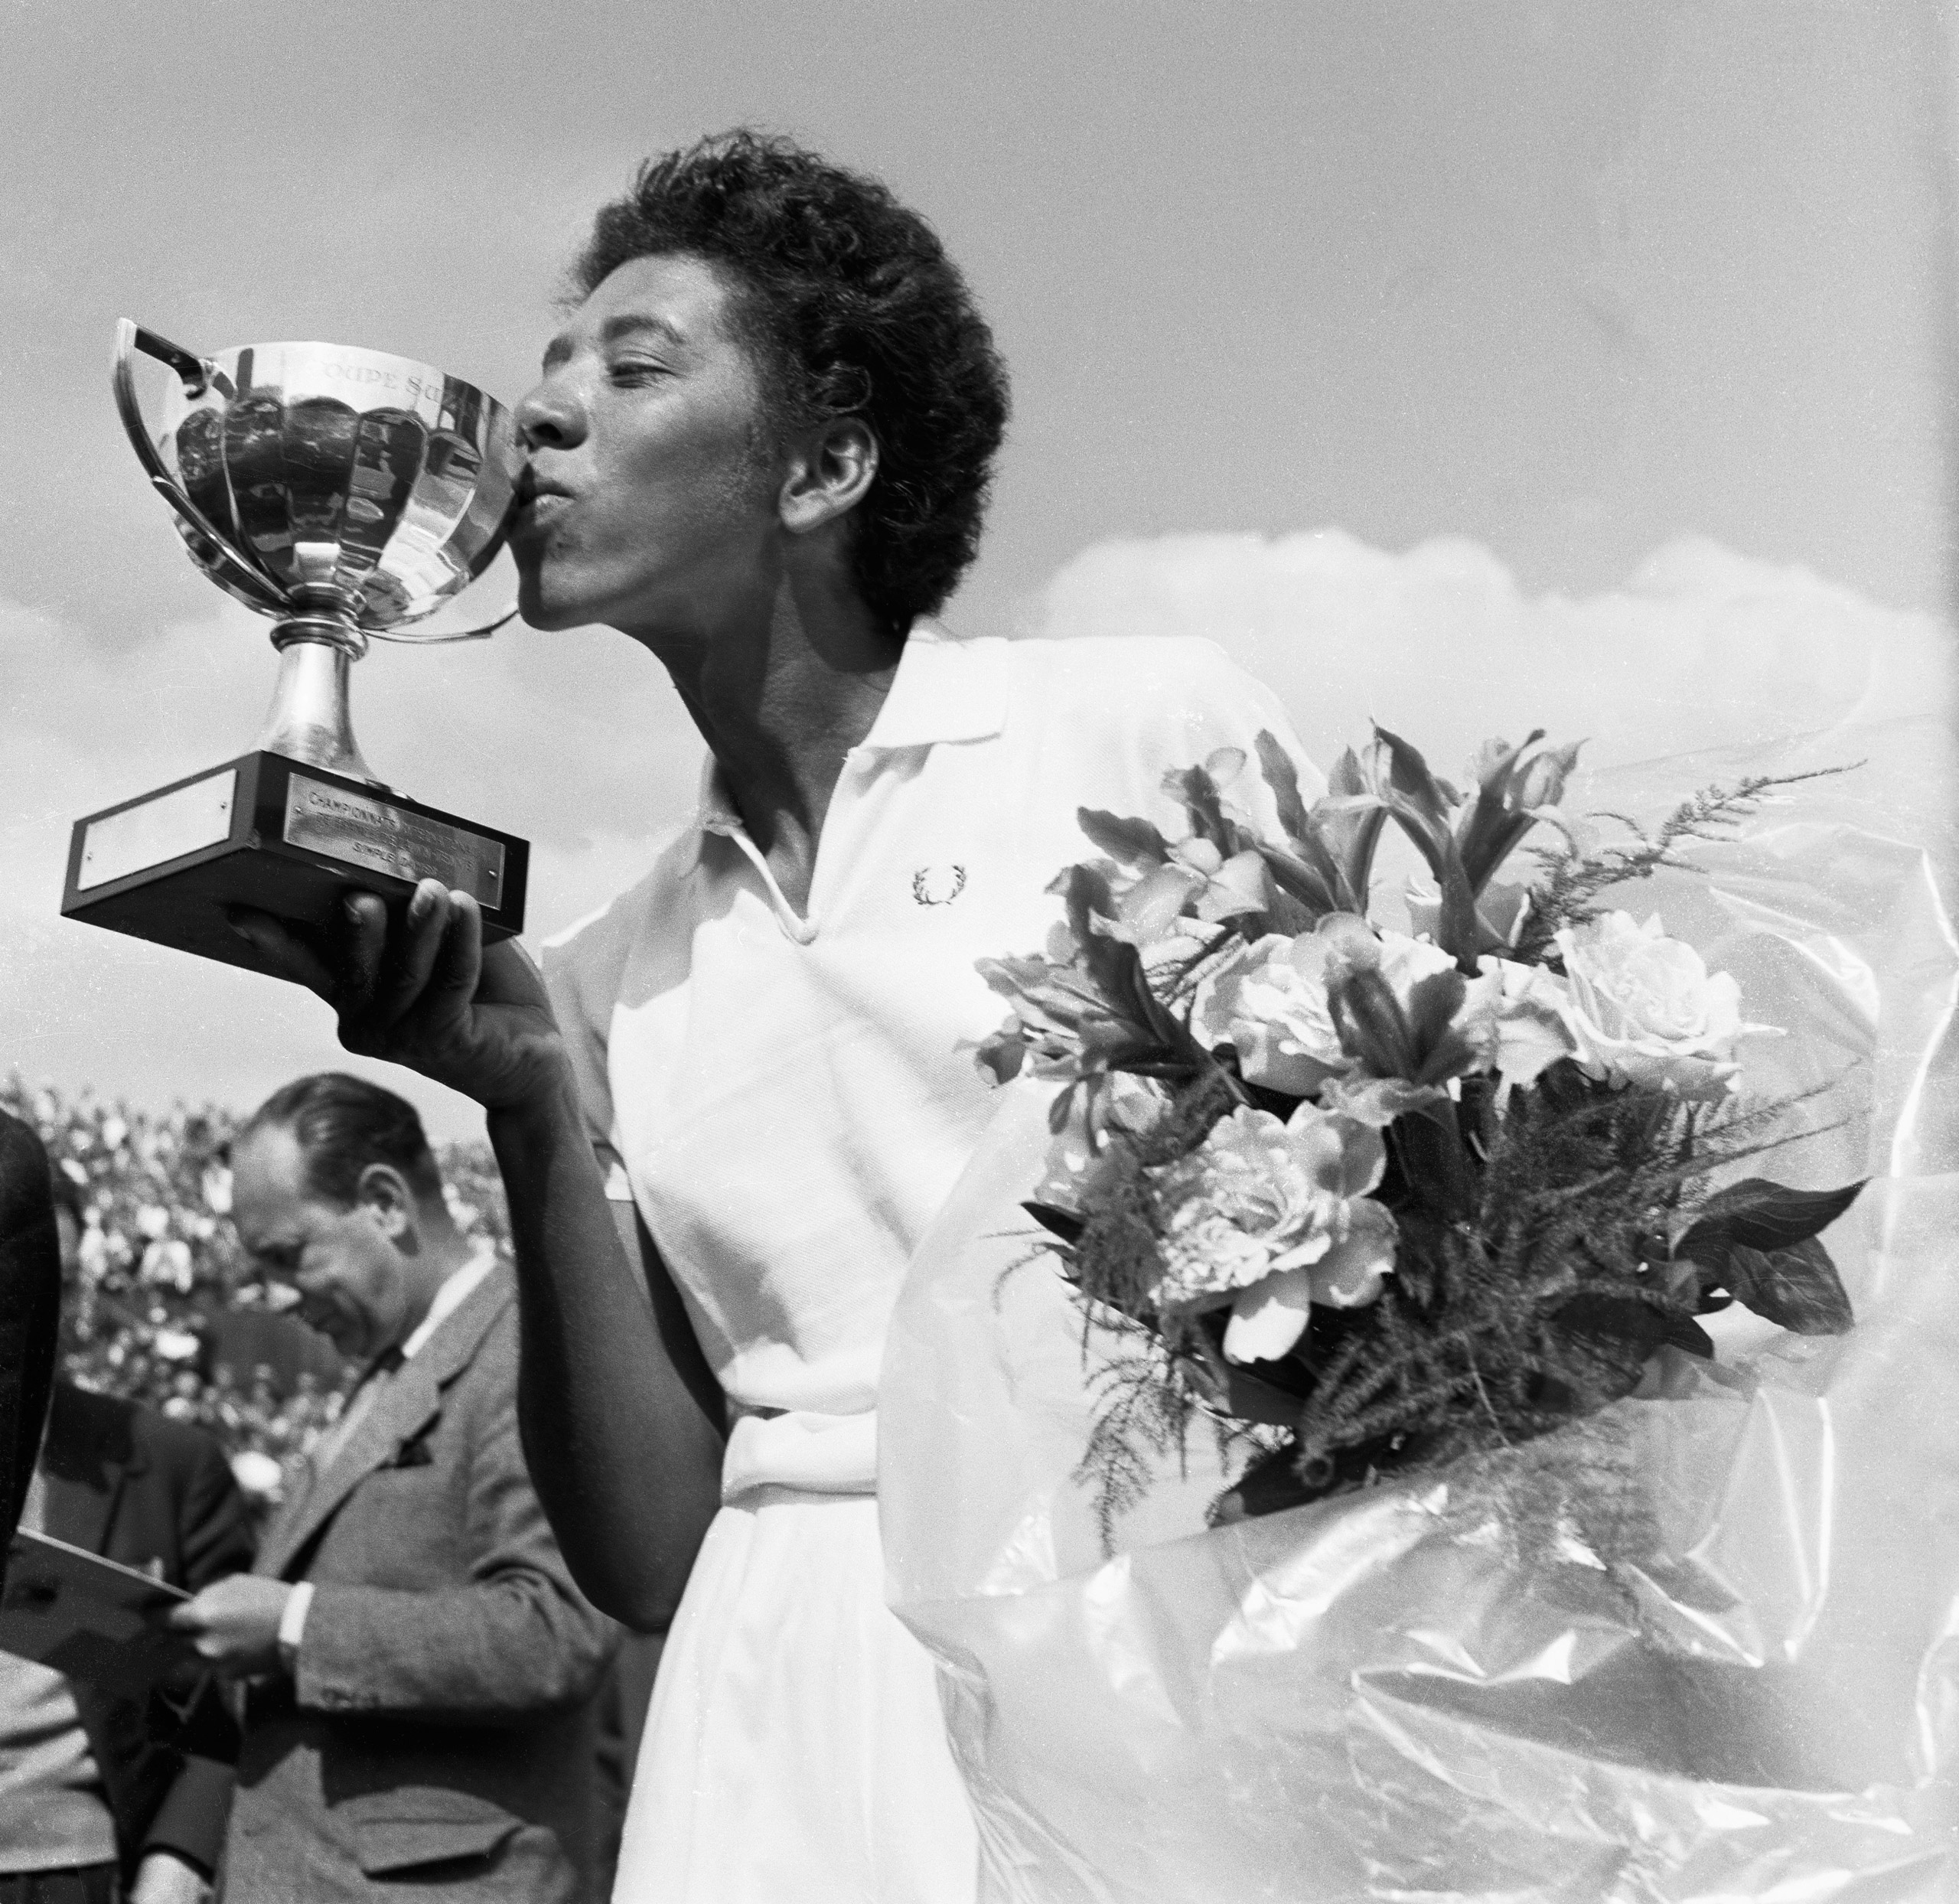 "Althea Gibson kisses the cup she was rewarded with after having won the French International Tennis Championships in Paris, May 26, 1956. Gibson broke the U.S. national championships color barrier and was on the <a href=""http://time.com/vault/issue/1957-08-26/page/1"">cover</a> of TIME in 1957."